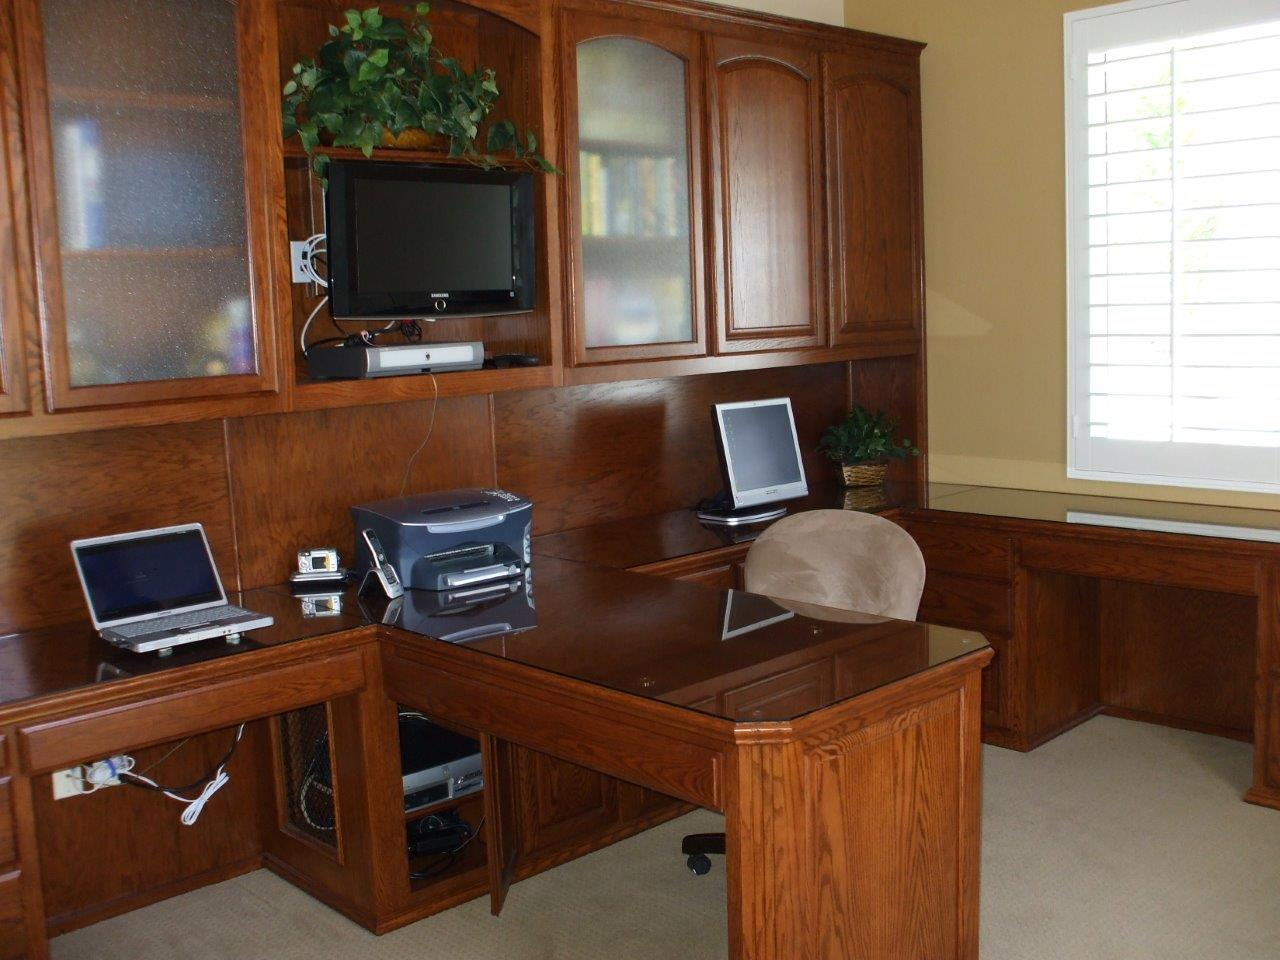 Captivating Custom Home Office Furniture Can Provide Maximum Storage And Organization